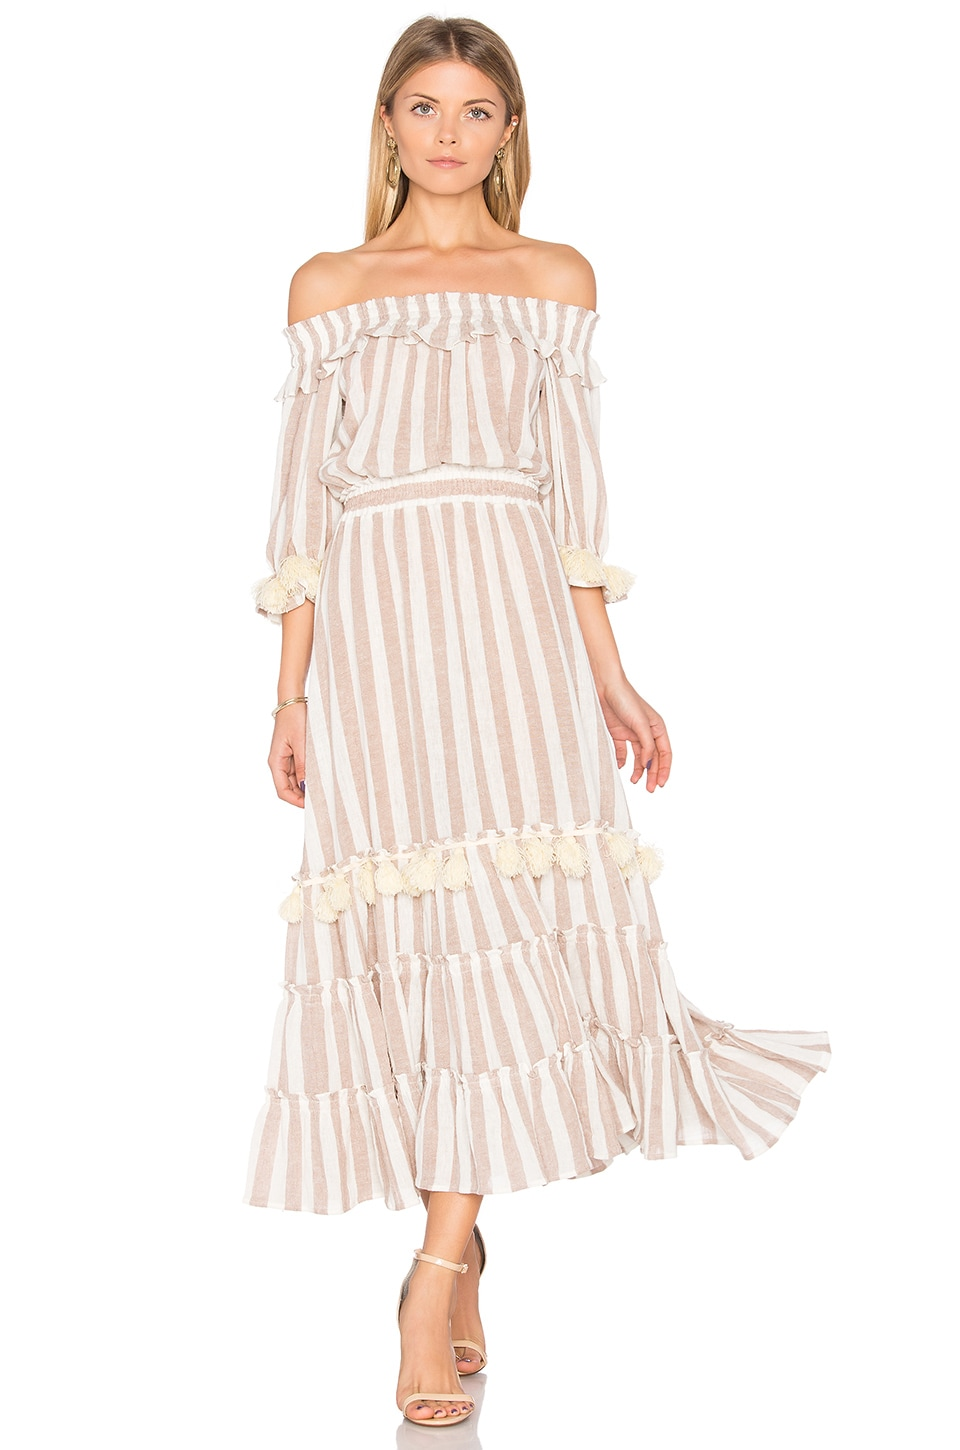 MISA Los Angeles Ava Dress in Blush Stripe